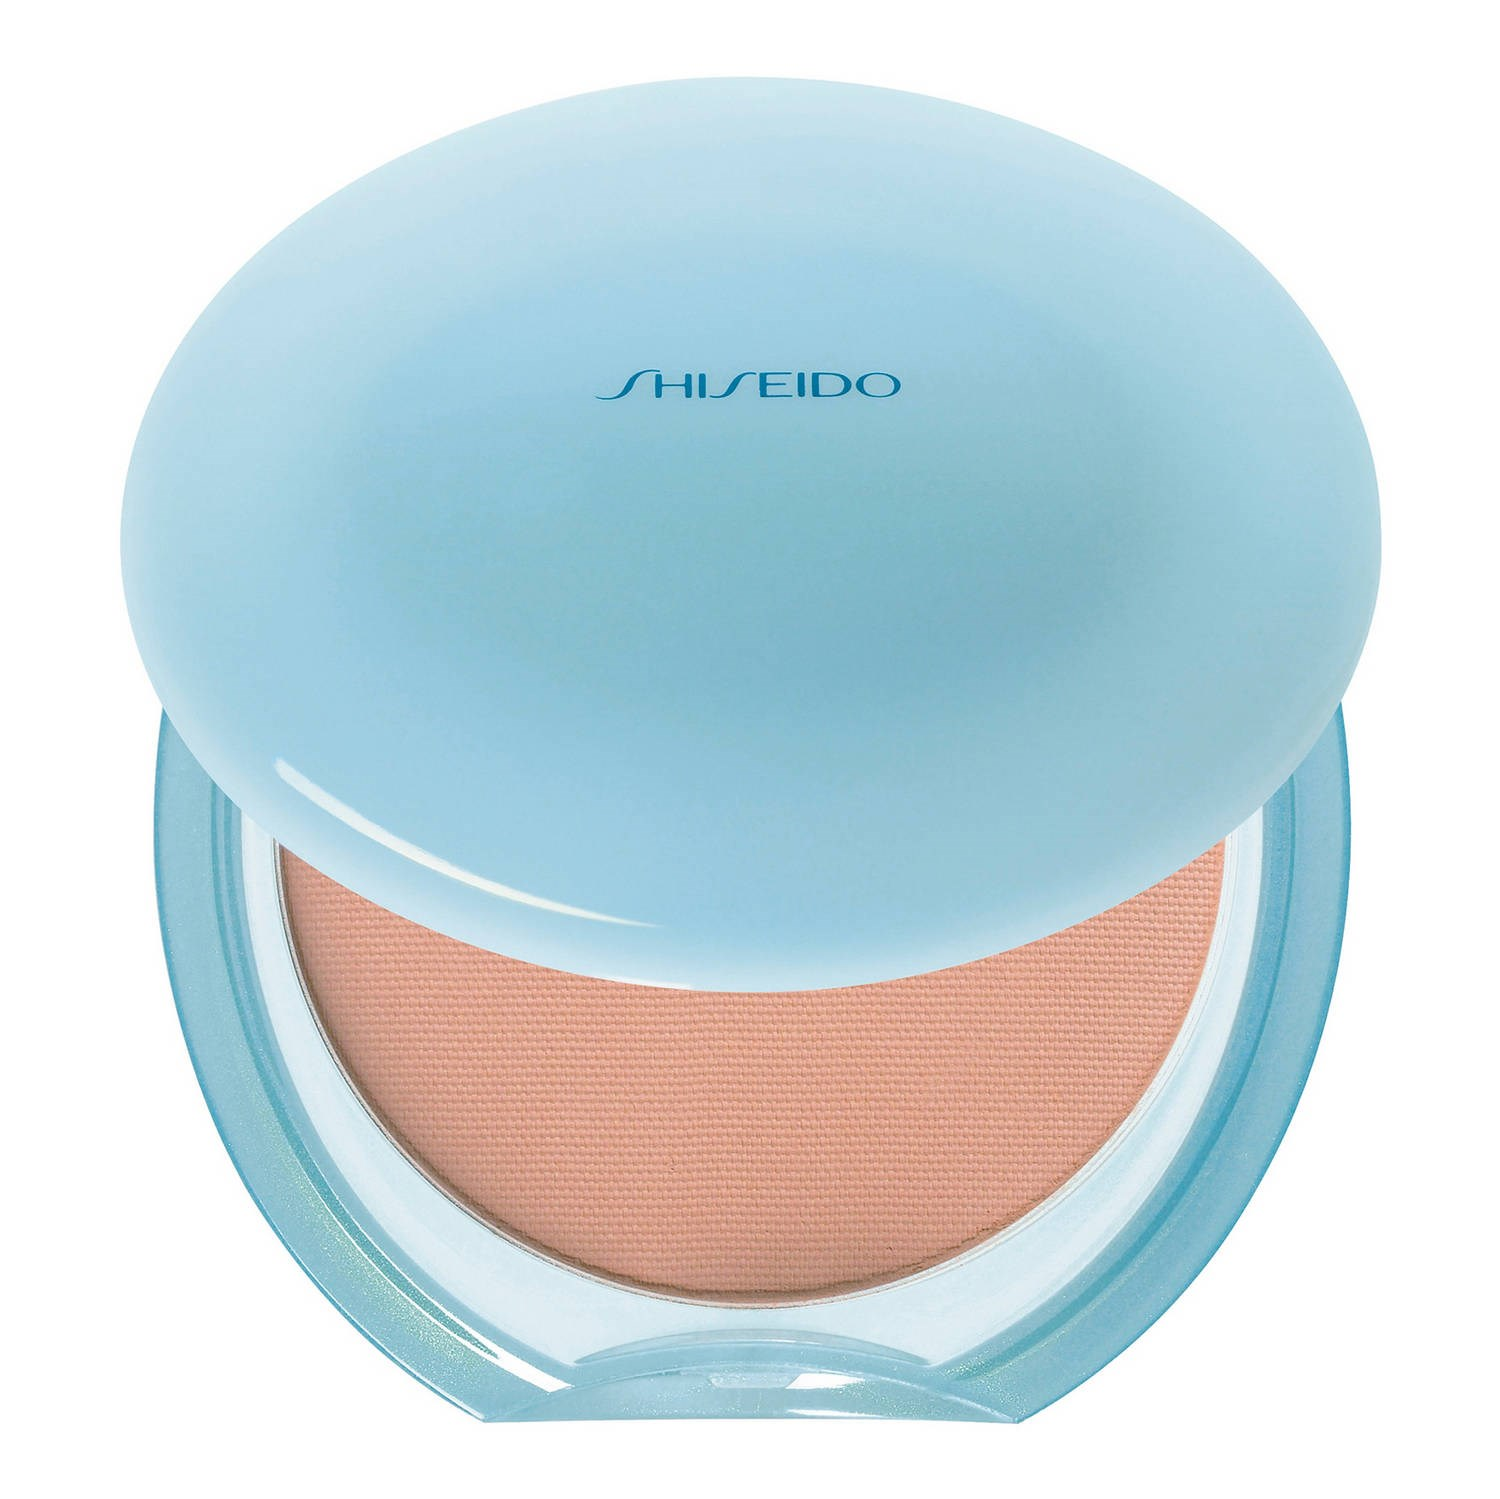 PURENESS MATTIFYING COMPACT FOUNDATION OIL-FREE SPF16 1